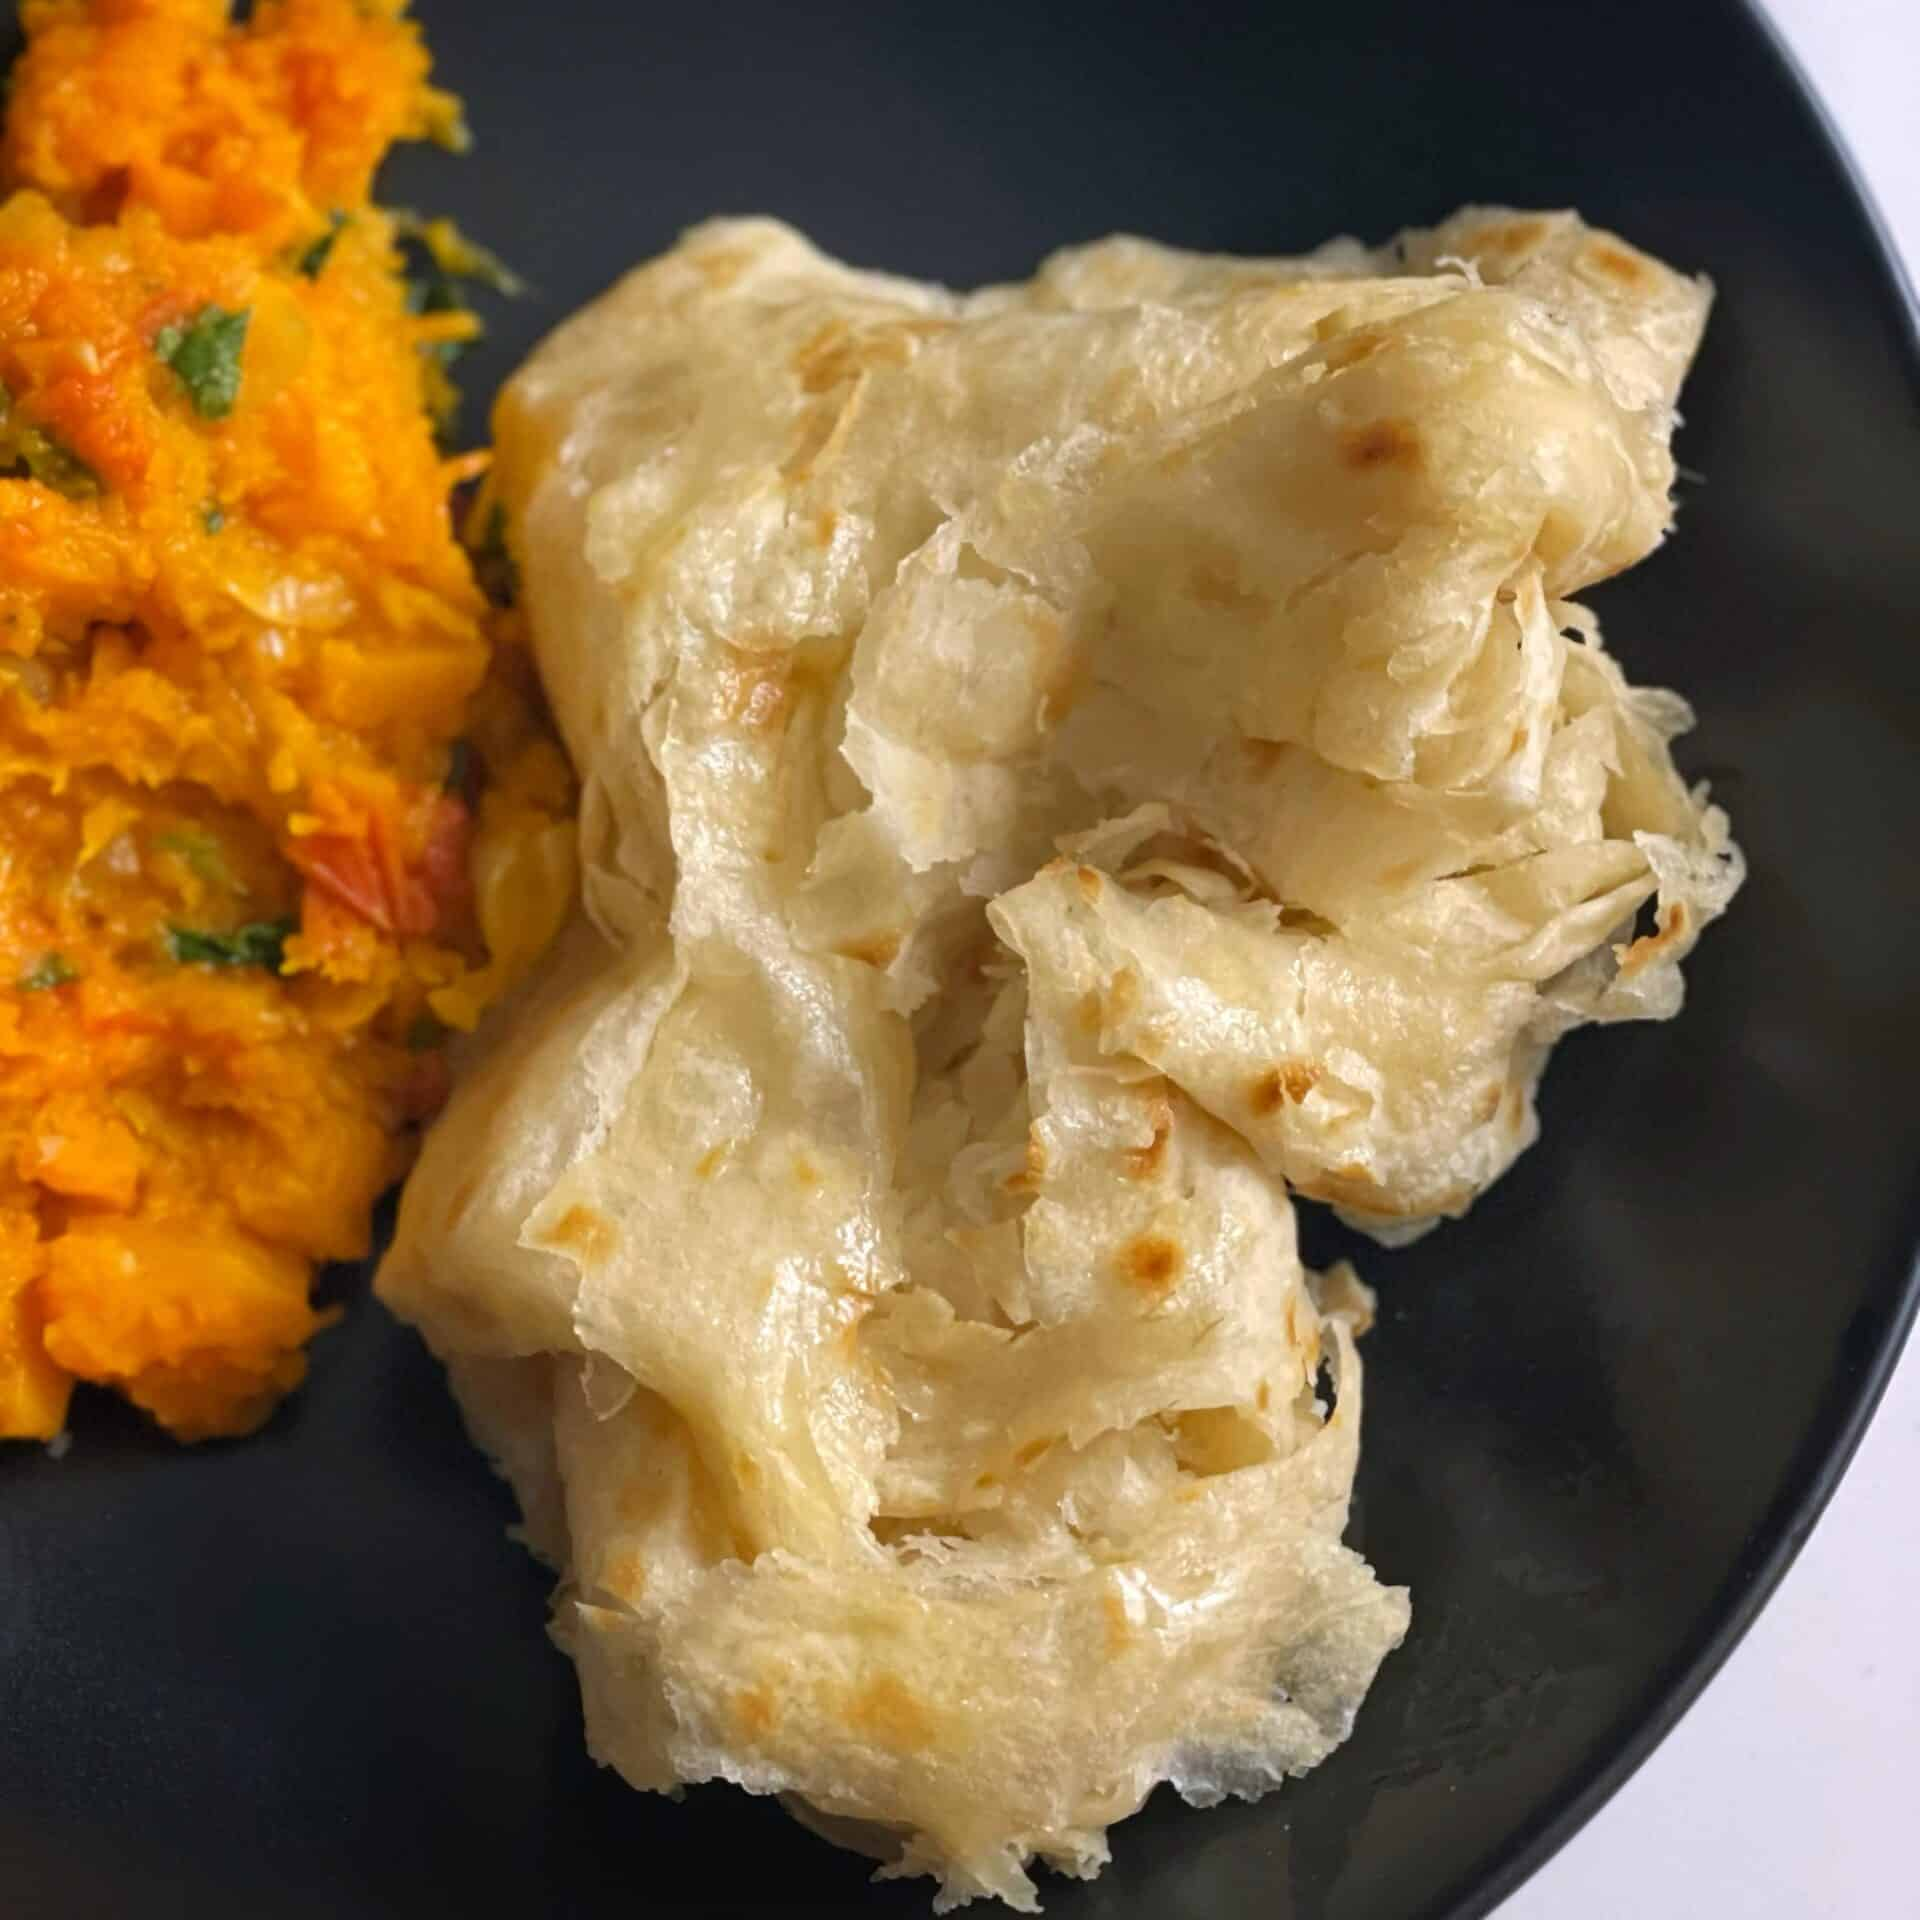 Guyanese oil roti in a black plate, with a side of pumpkin